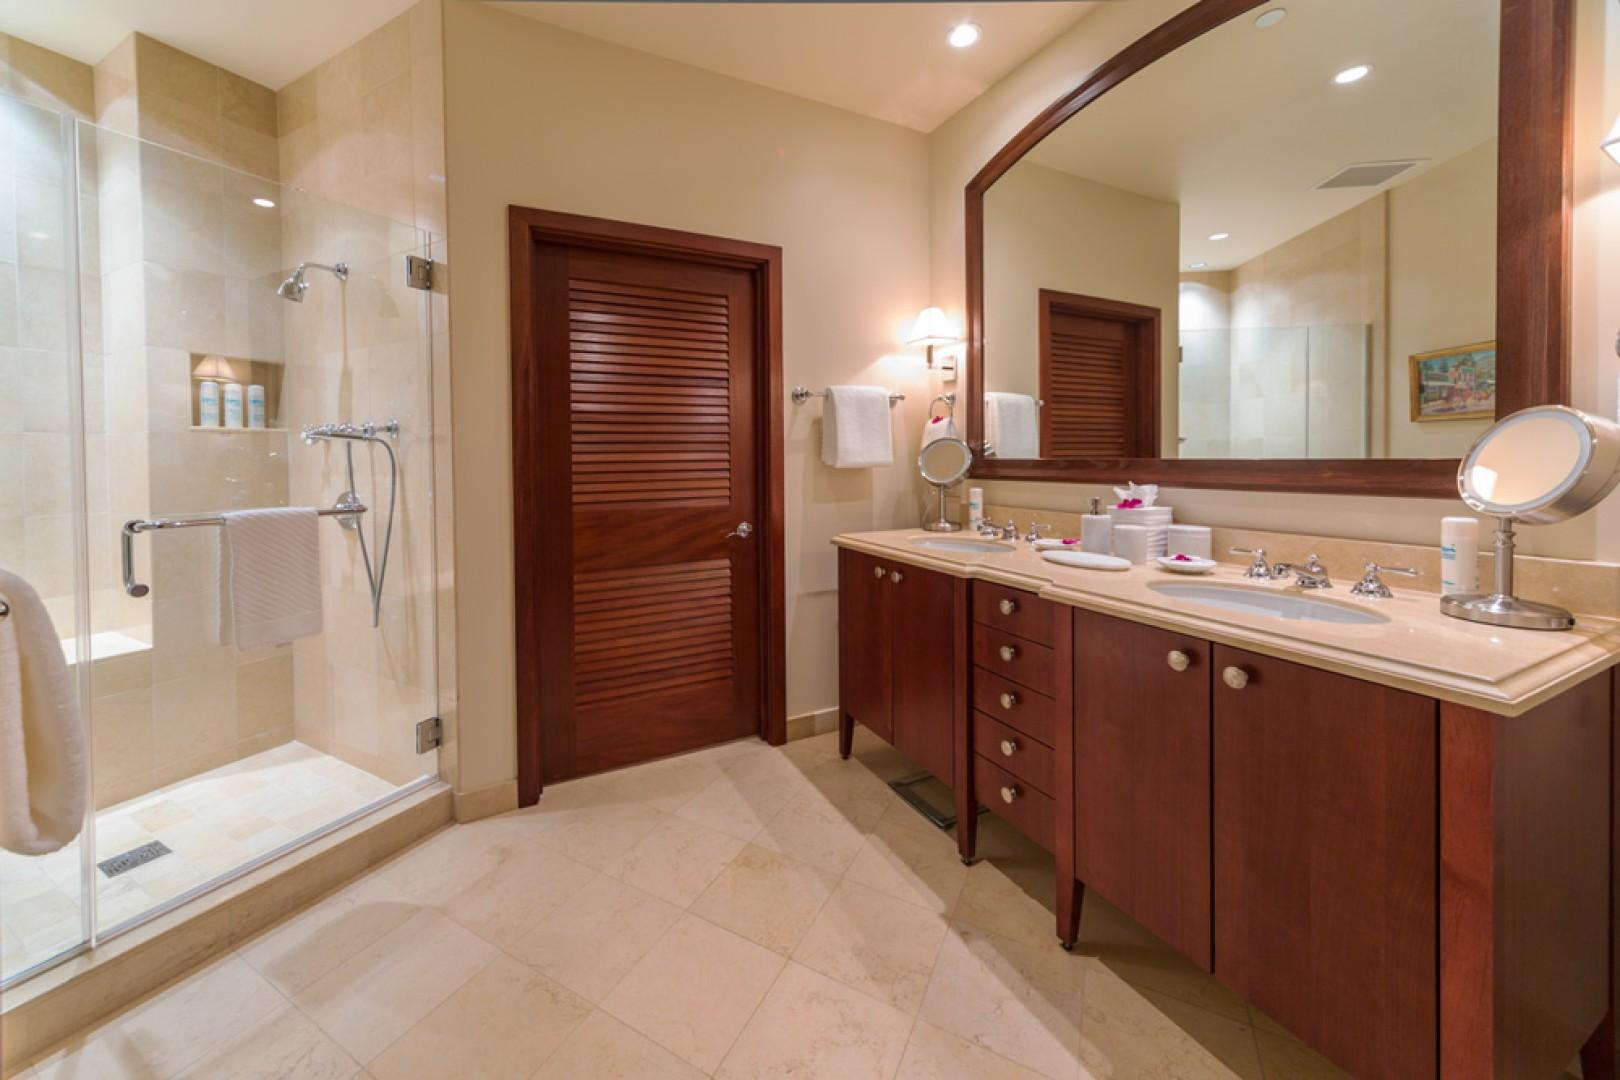 L509 Sandcastles Suite Second Master Bedroom Bath with Glass Shower, Private WC, Dual Vanities